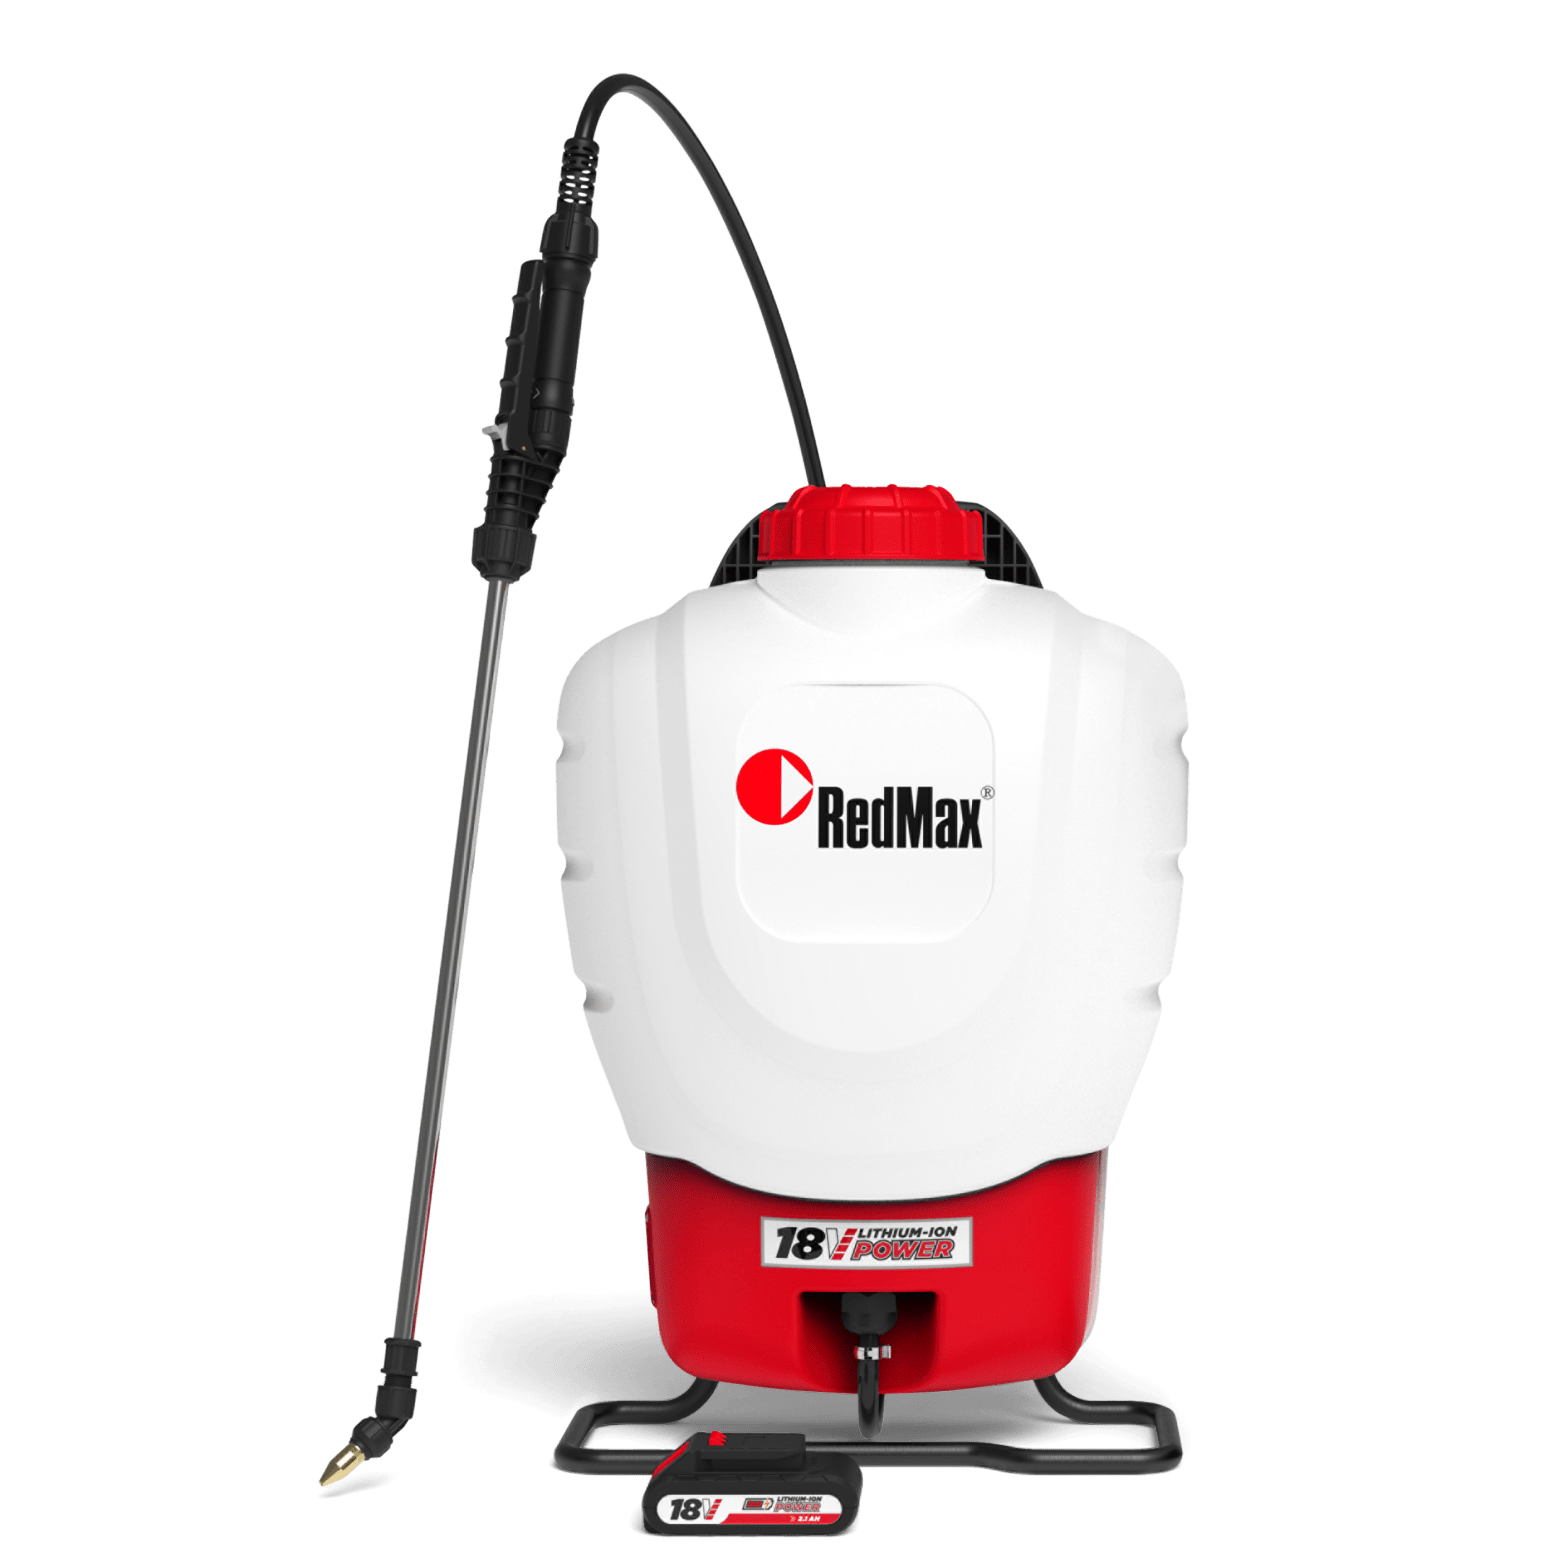 598967301 Red Max 4 Gallon Battery Backpack Sprayer